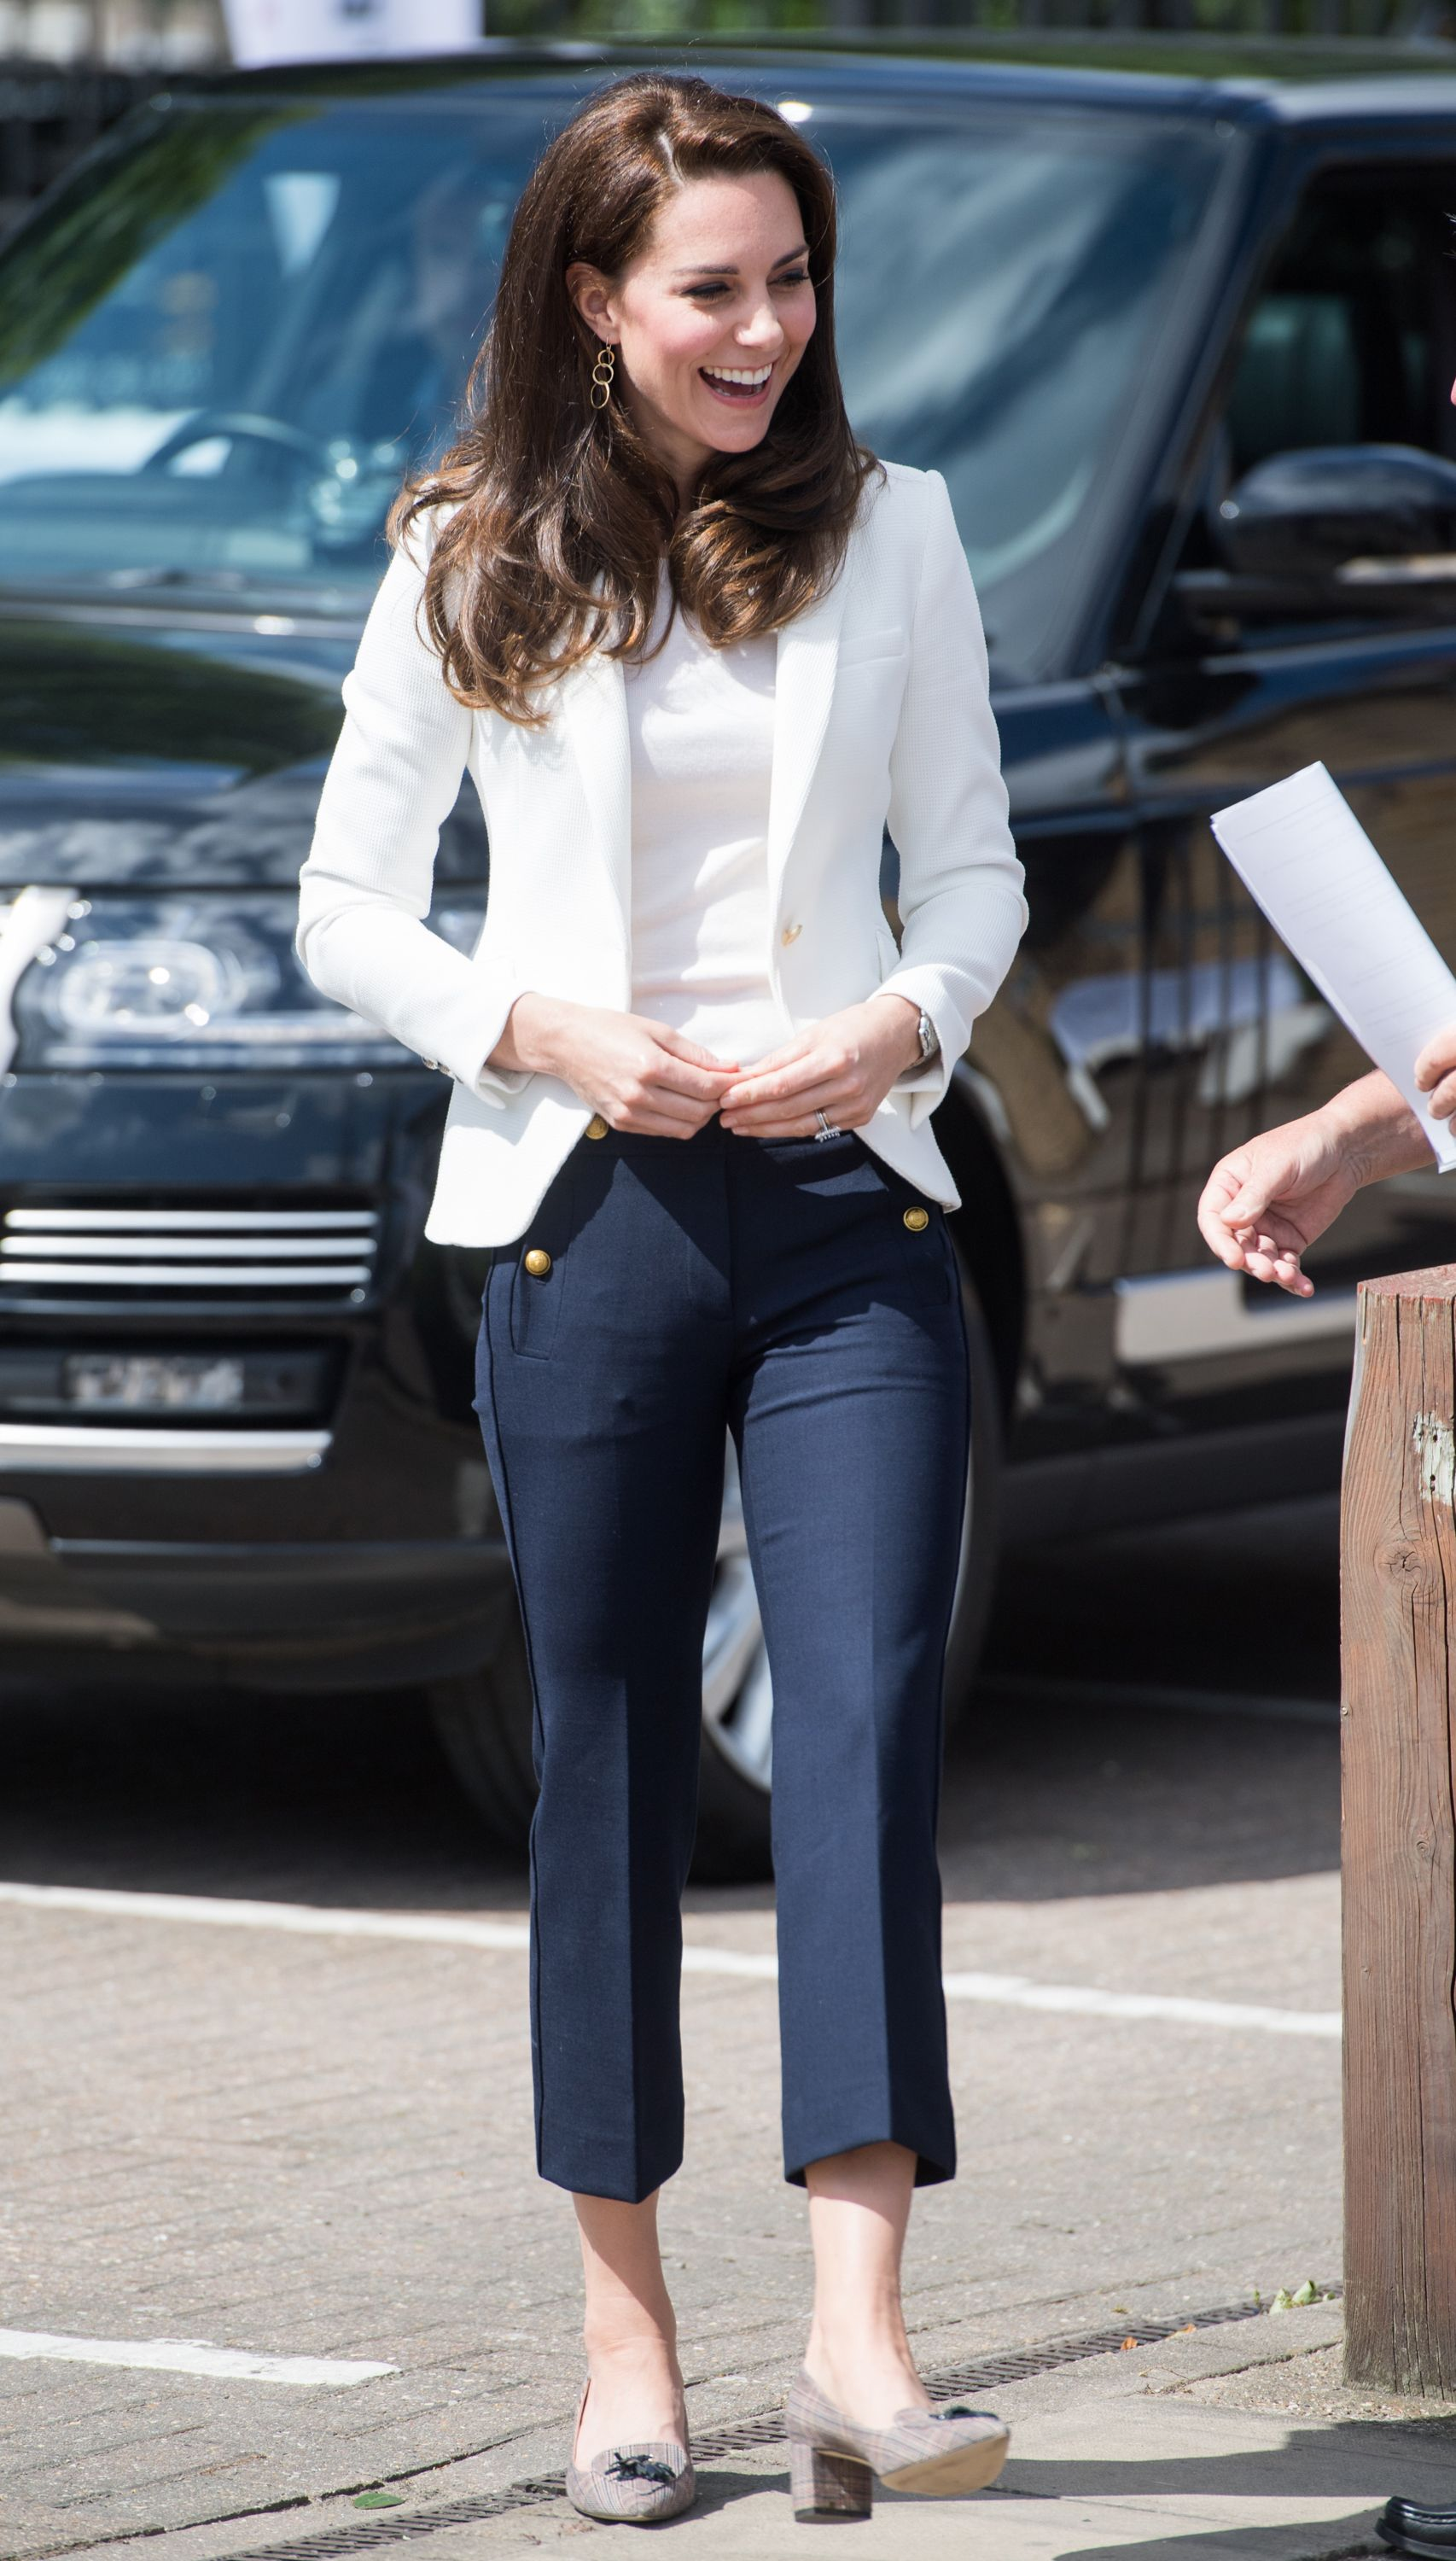 Kate Middleton S Best Style Moments The Duchess Of Cambridge S